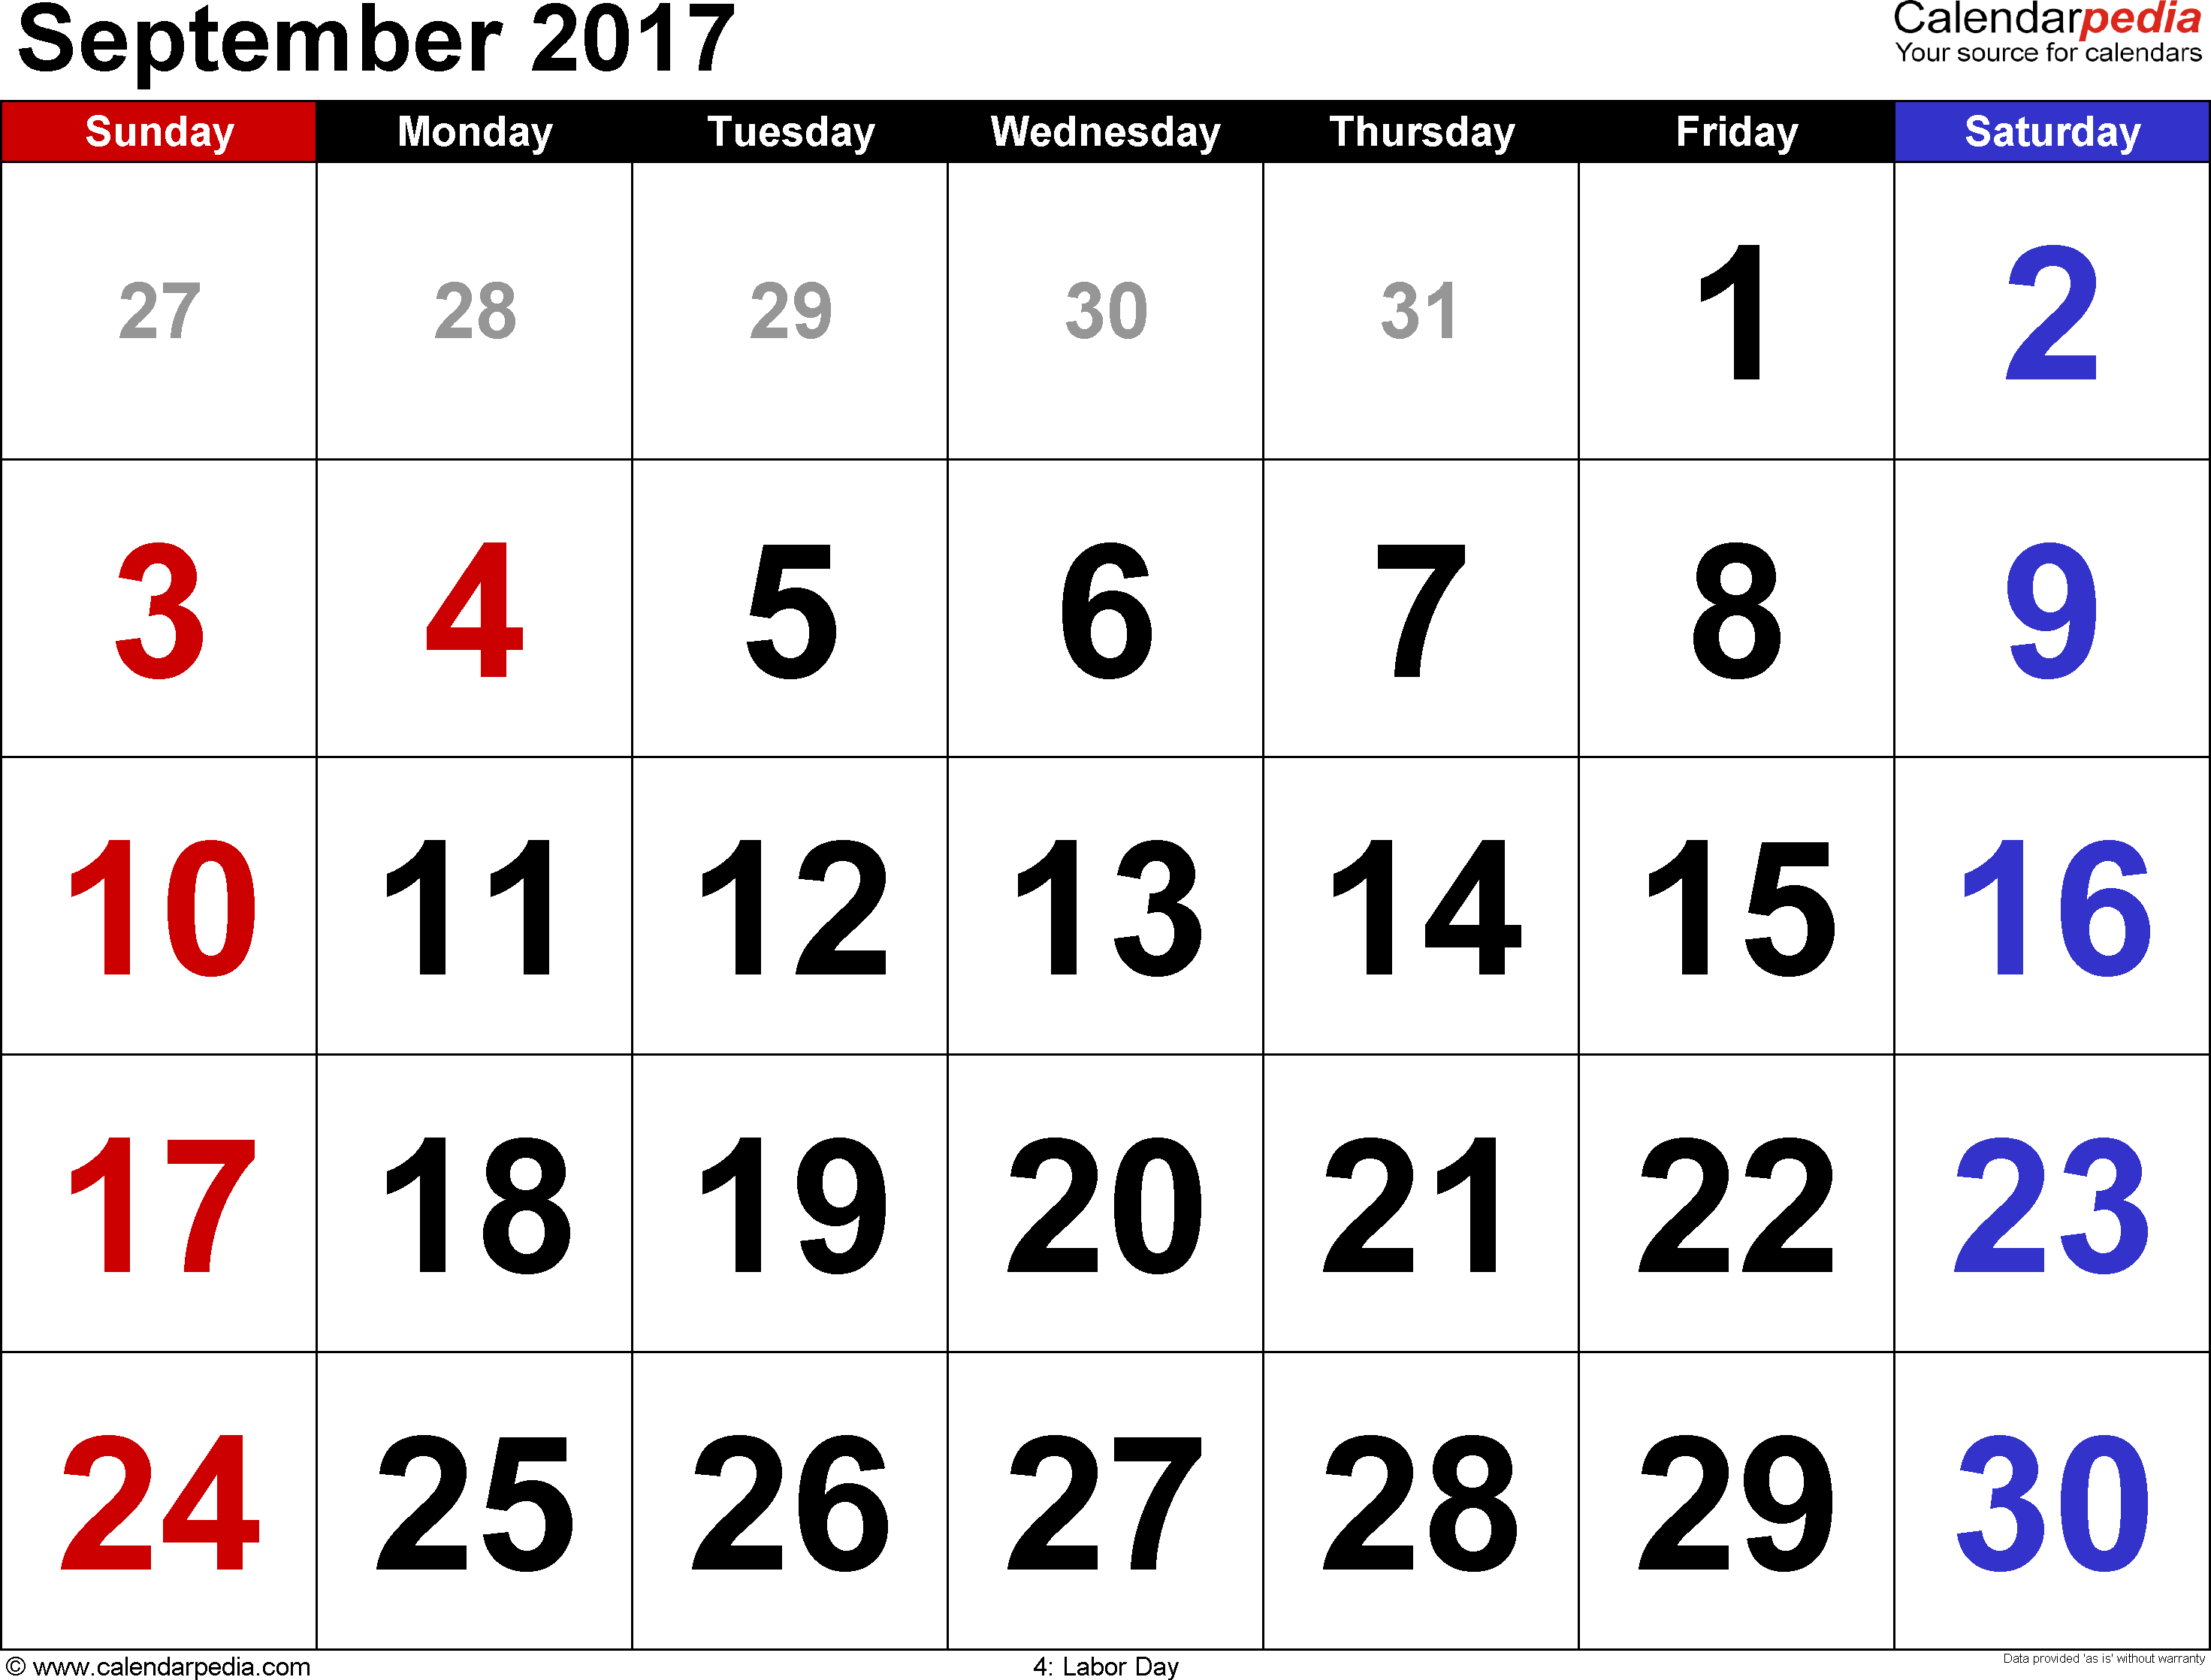 October 2017 Calendar Template | weekly calendar …